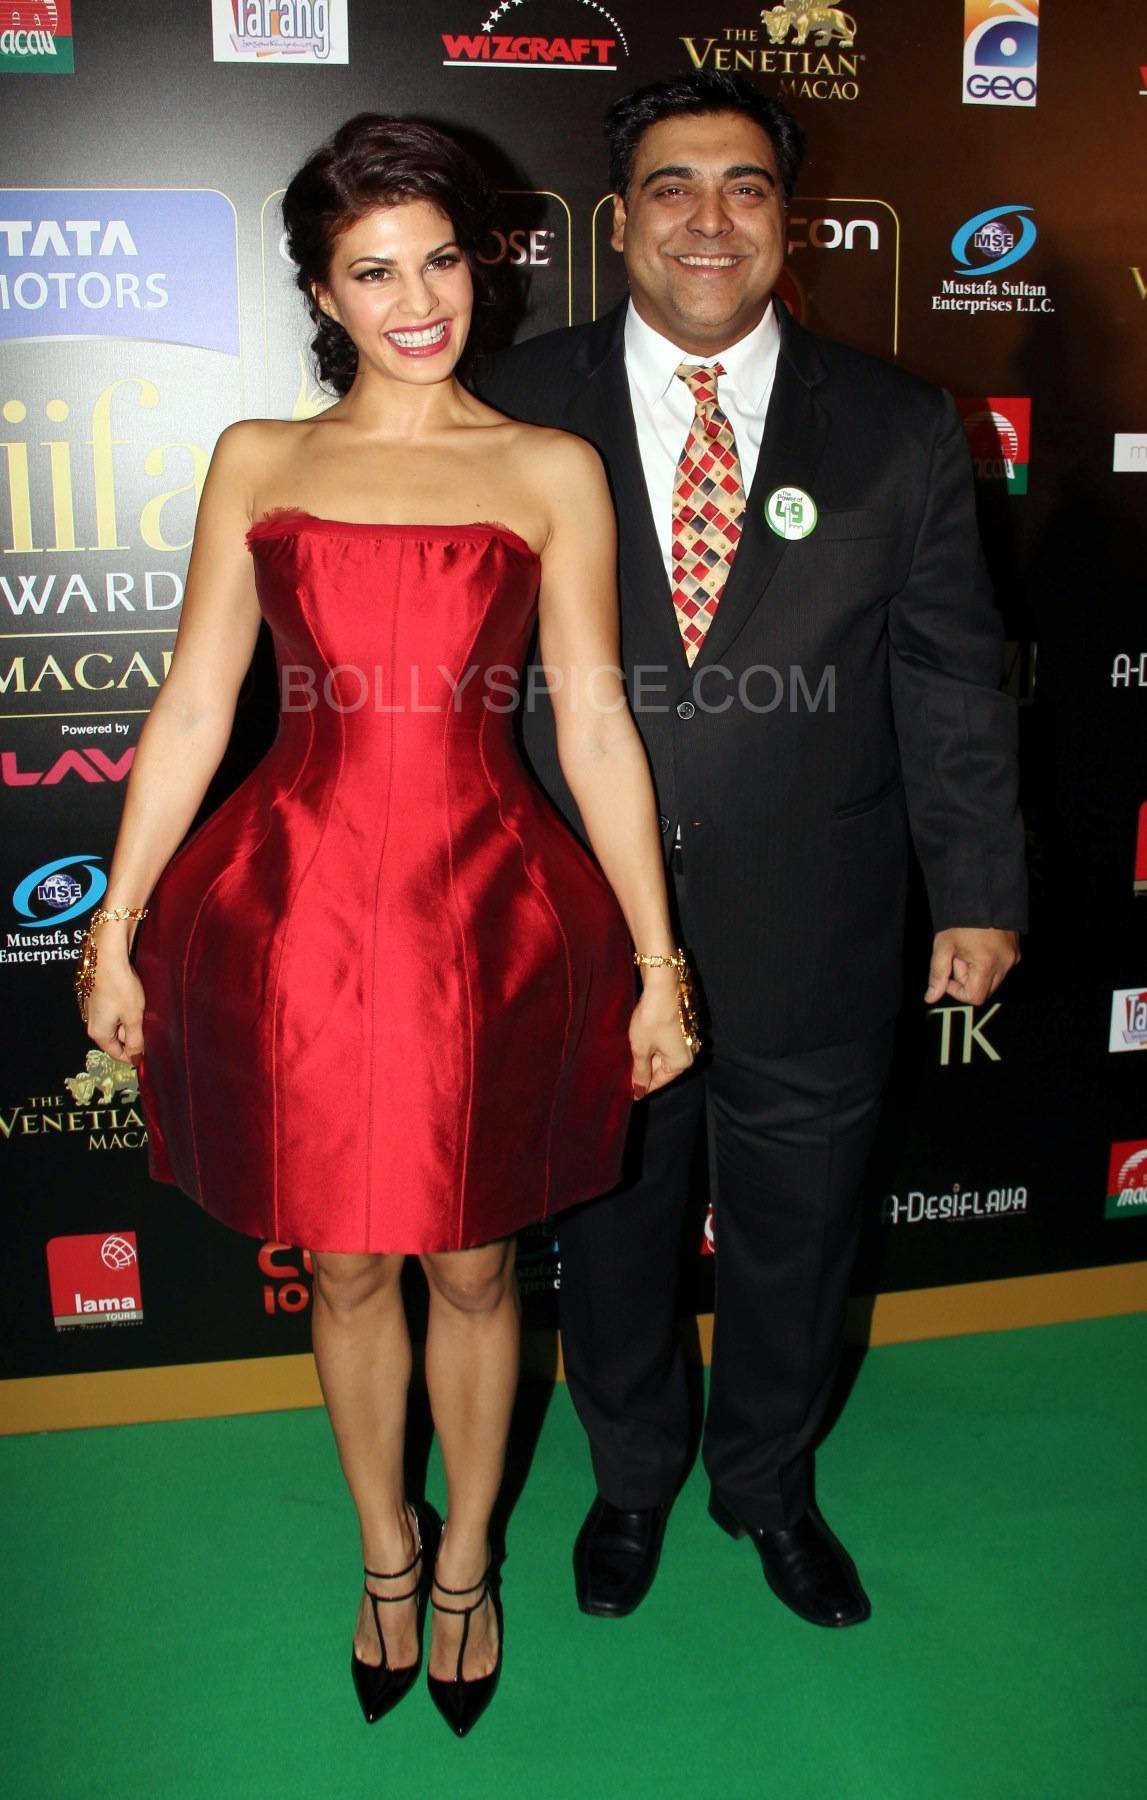 Jacquline Fernandez and Ram Kapoor at IIFA Rocks Green carpet More from IIFA Rocks including winners and more Green Carpet pics! Pics added!